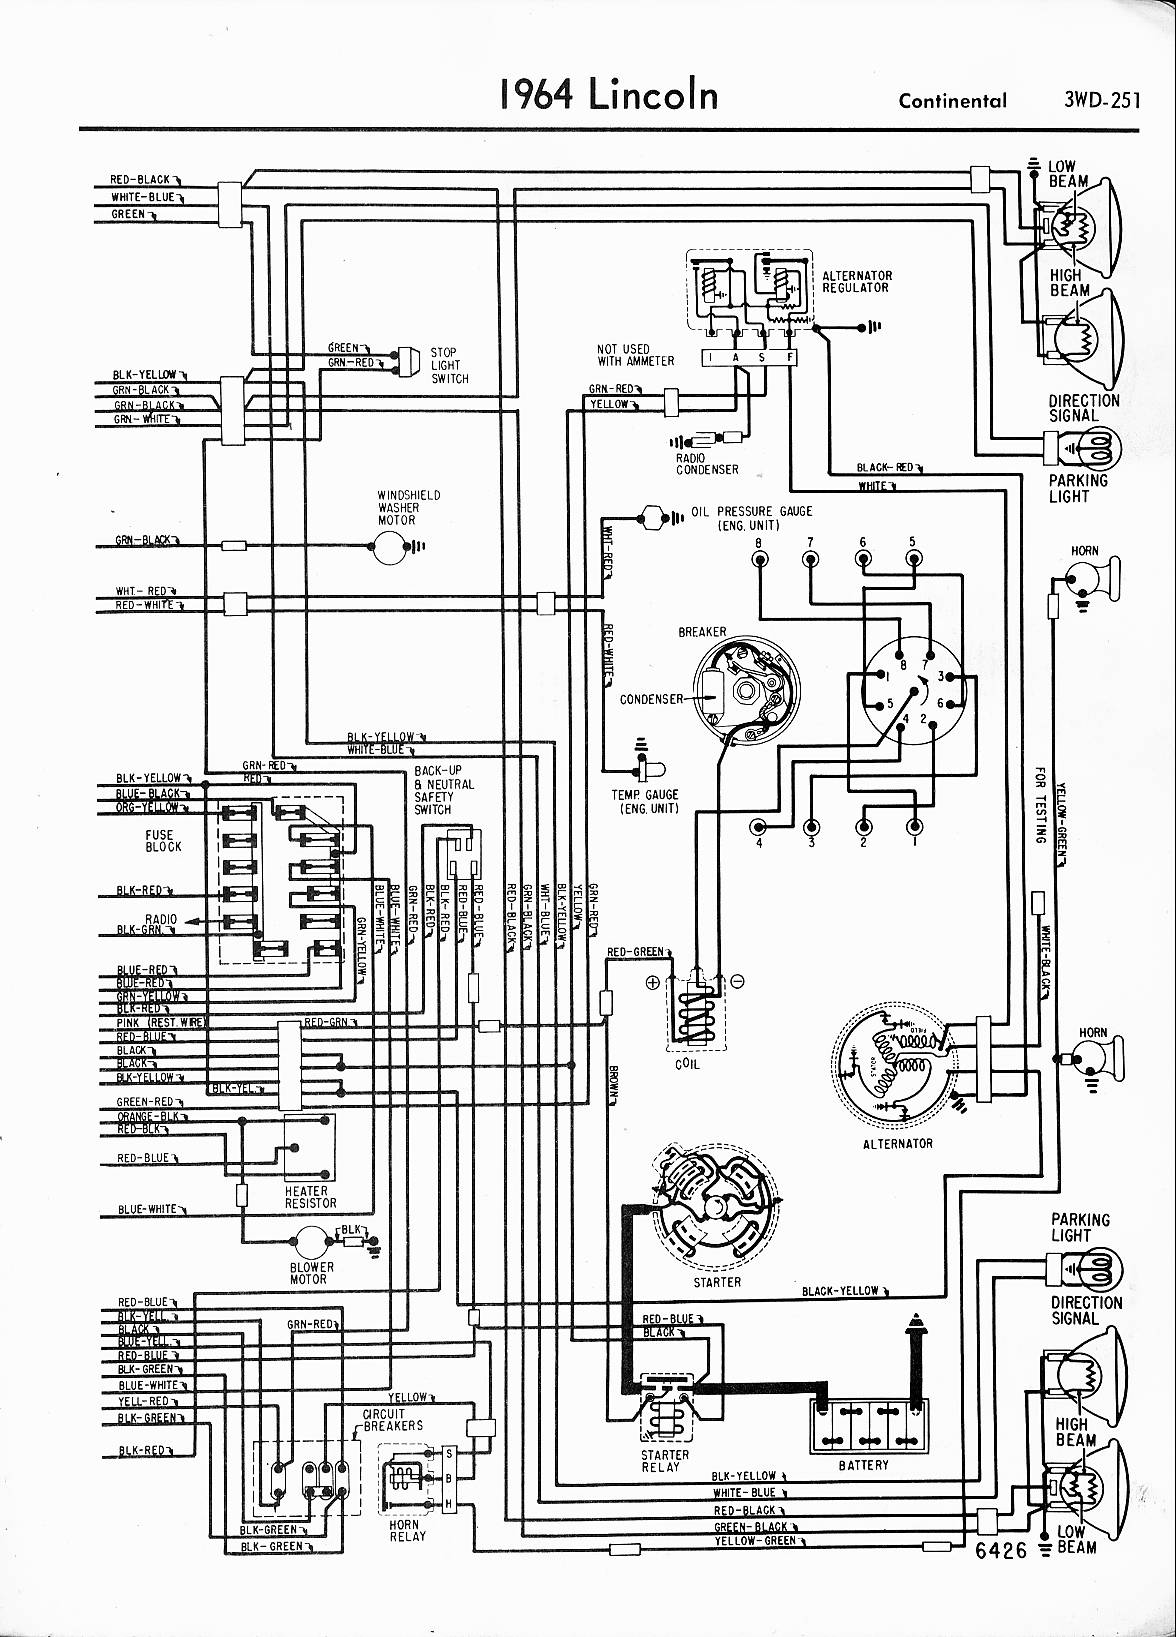 1995 Ford Thunderbird Fuse Box Diagram Wiring Library Diagrams Lincoln 1957 1965 Continental Mark 6